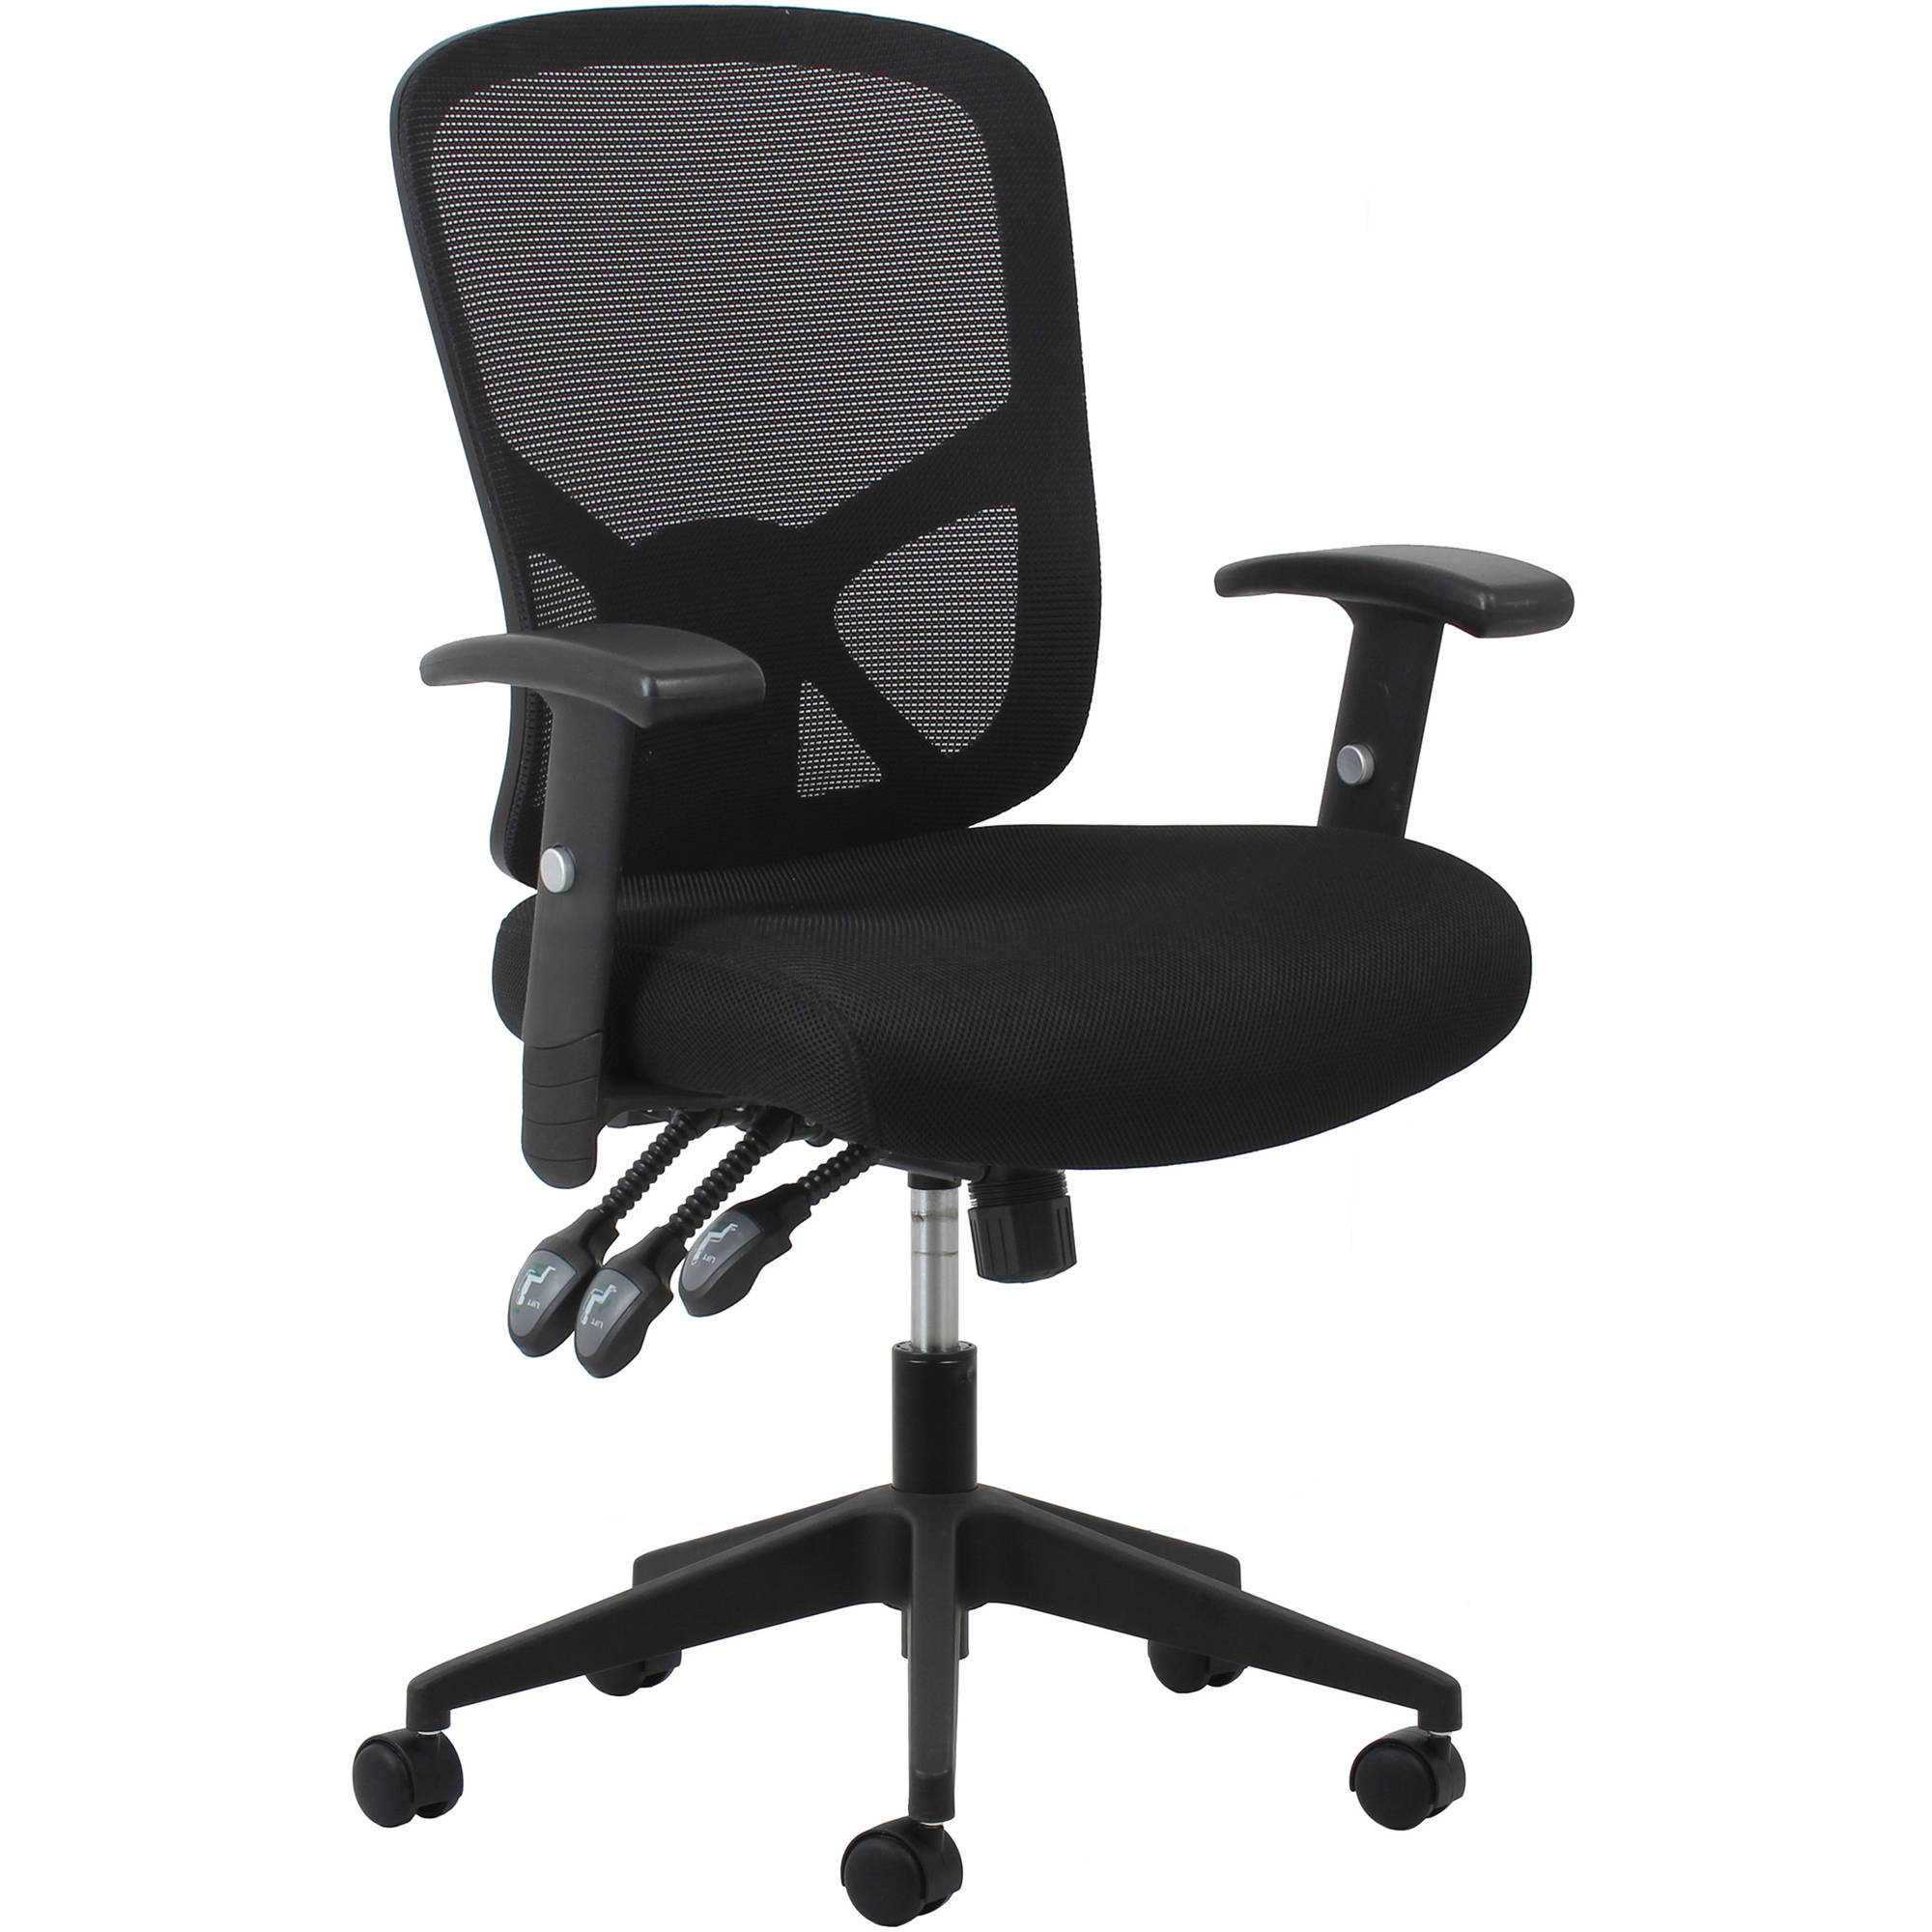 Essentials by OFM 3-Paddle Ergonomic High-Back Mesh Task Chair with Arms and Lumbar Support, Black